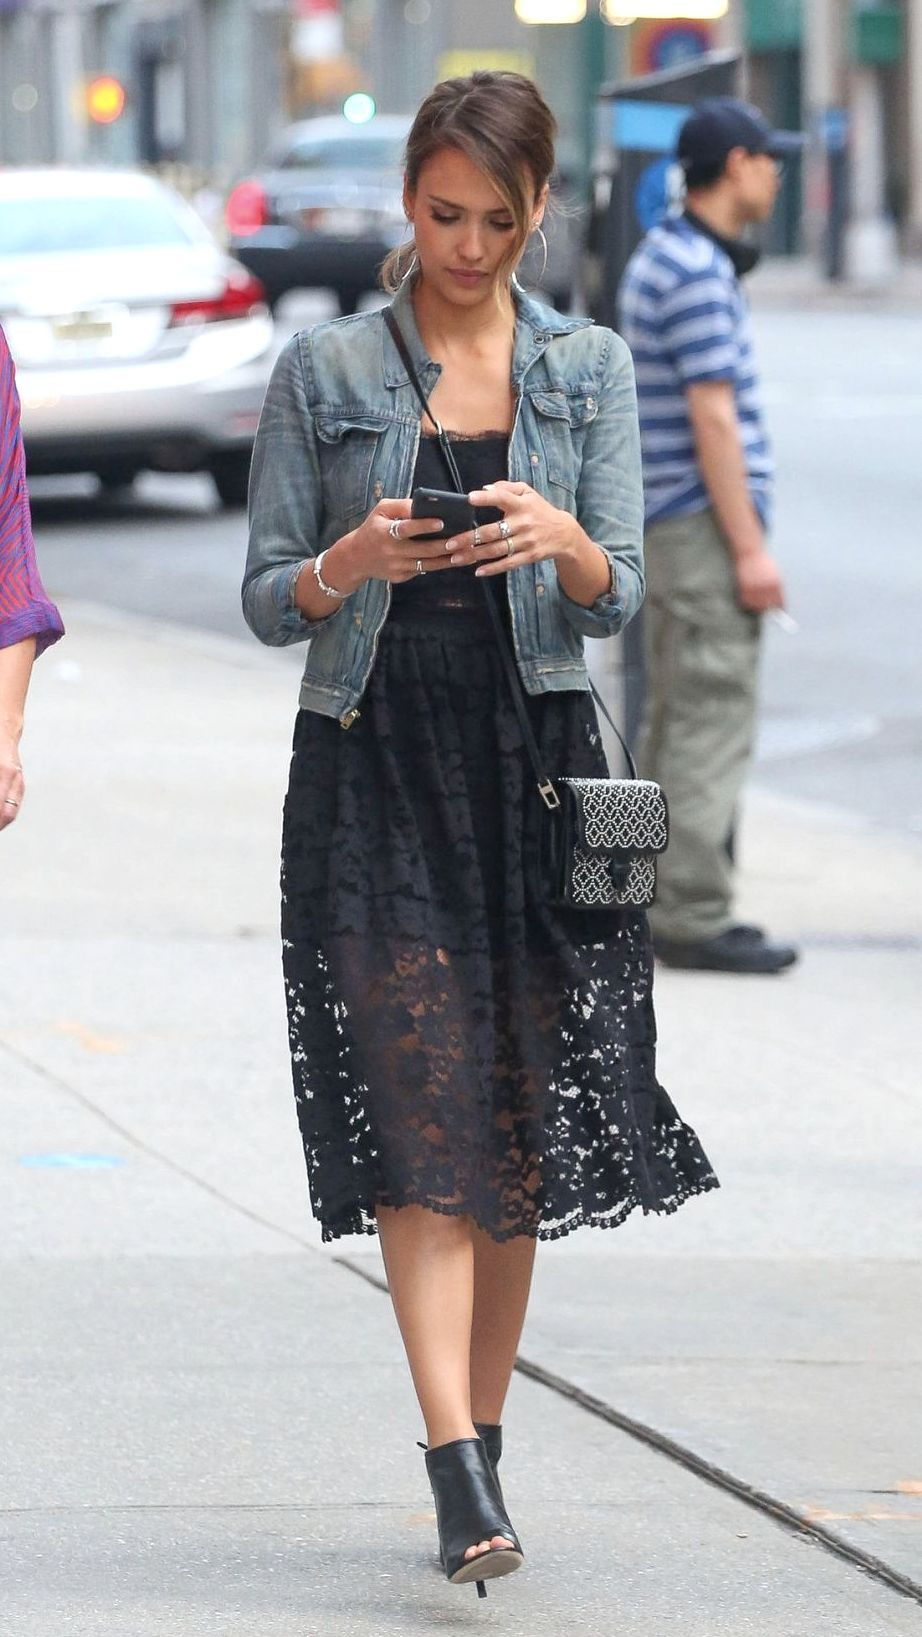 Black dress jean jacket - Jessica Alba Sheer Black Lace Dress And Denim Jacket